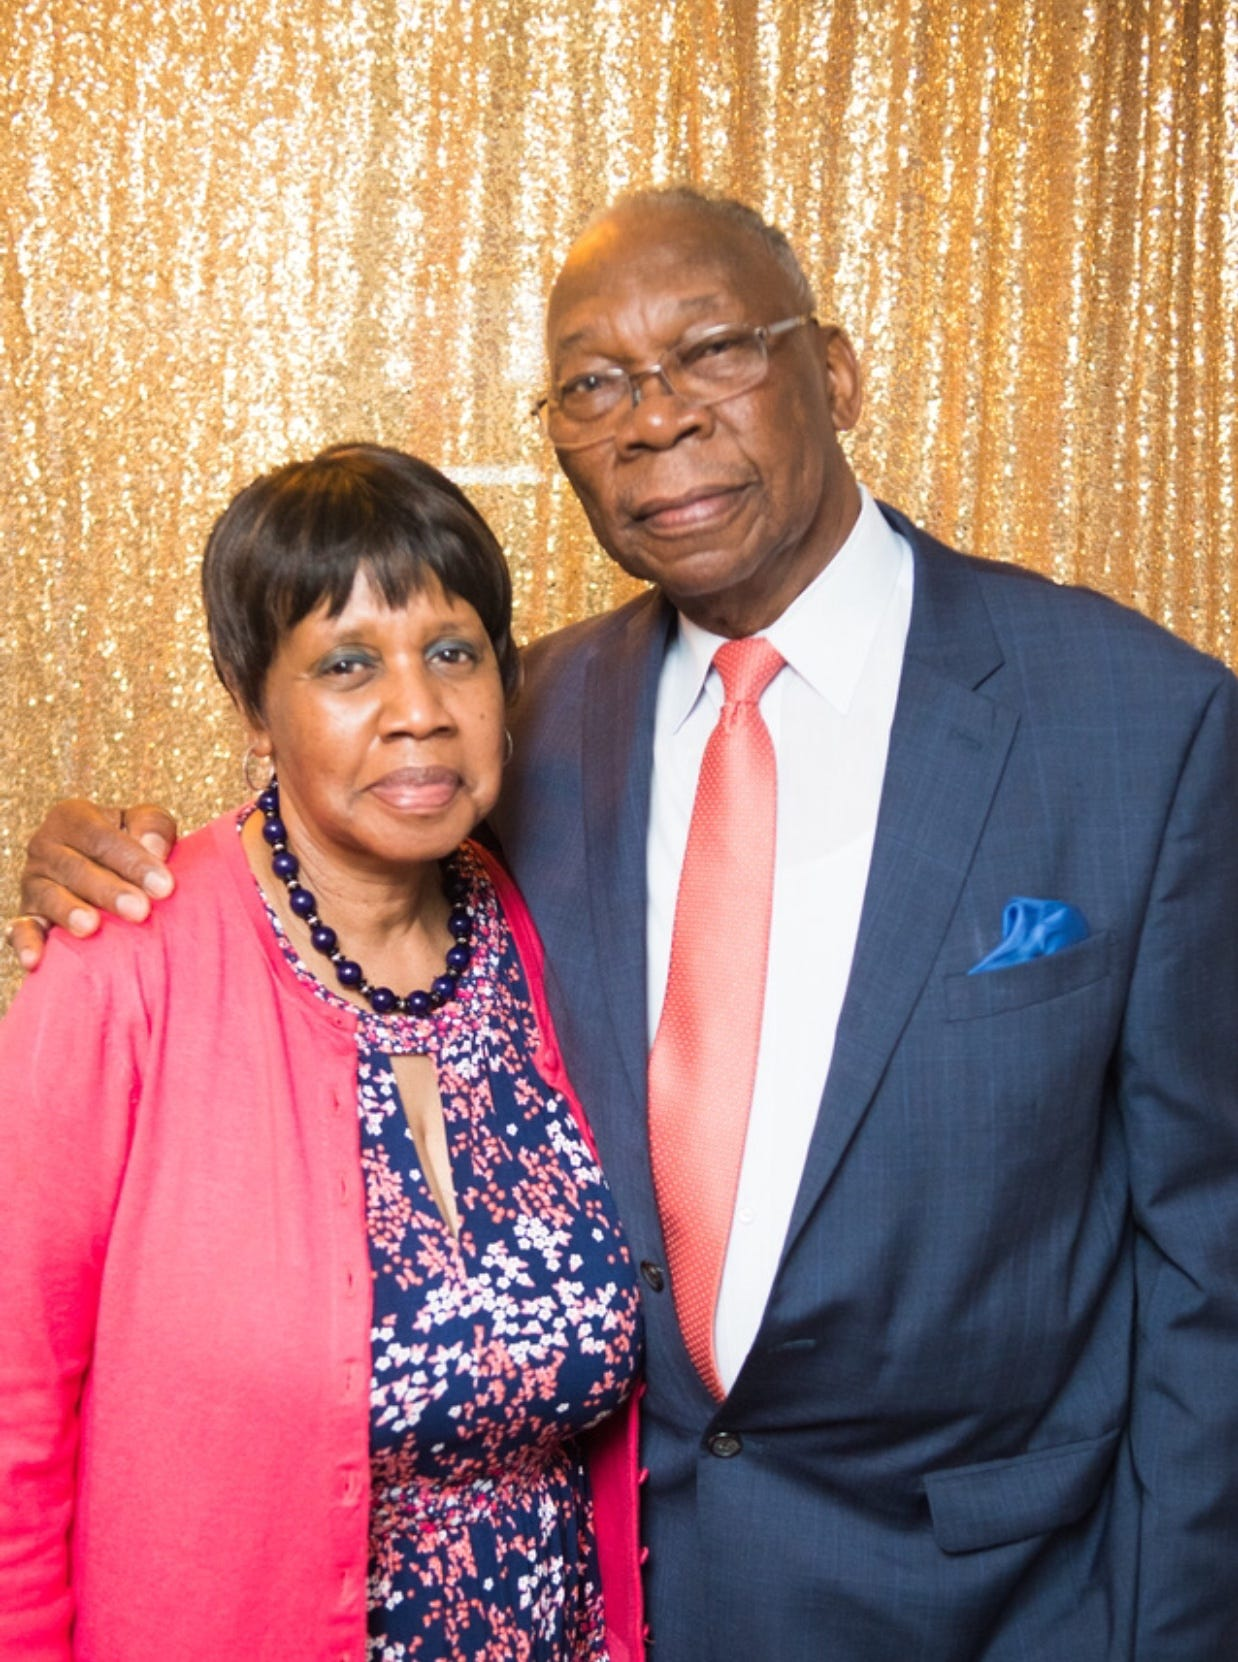 Shaylah Brown's grandparents at her grandfather's 80th birthday celebration.